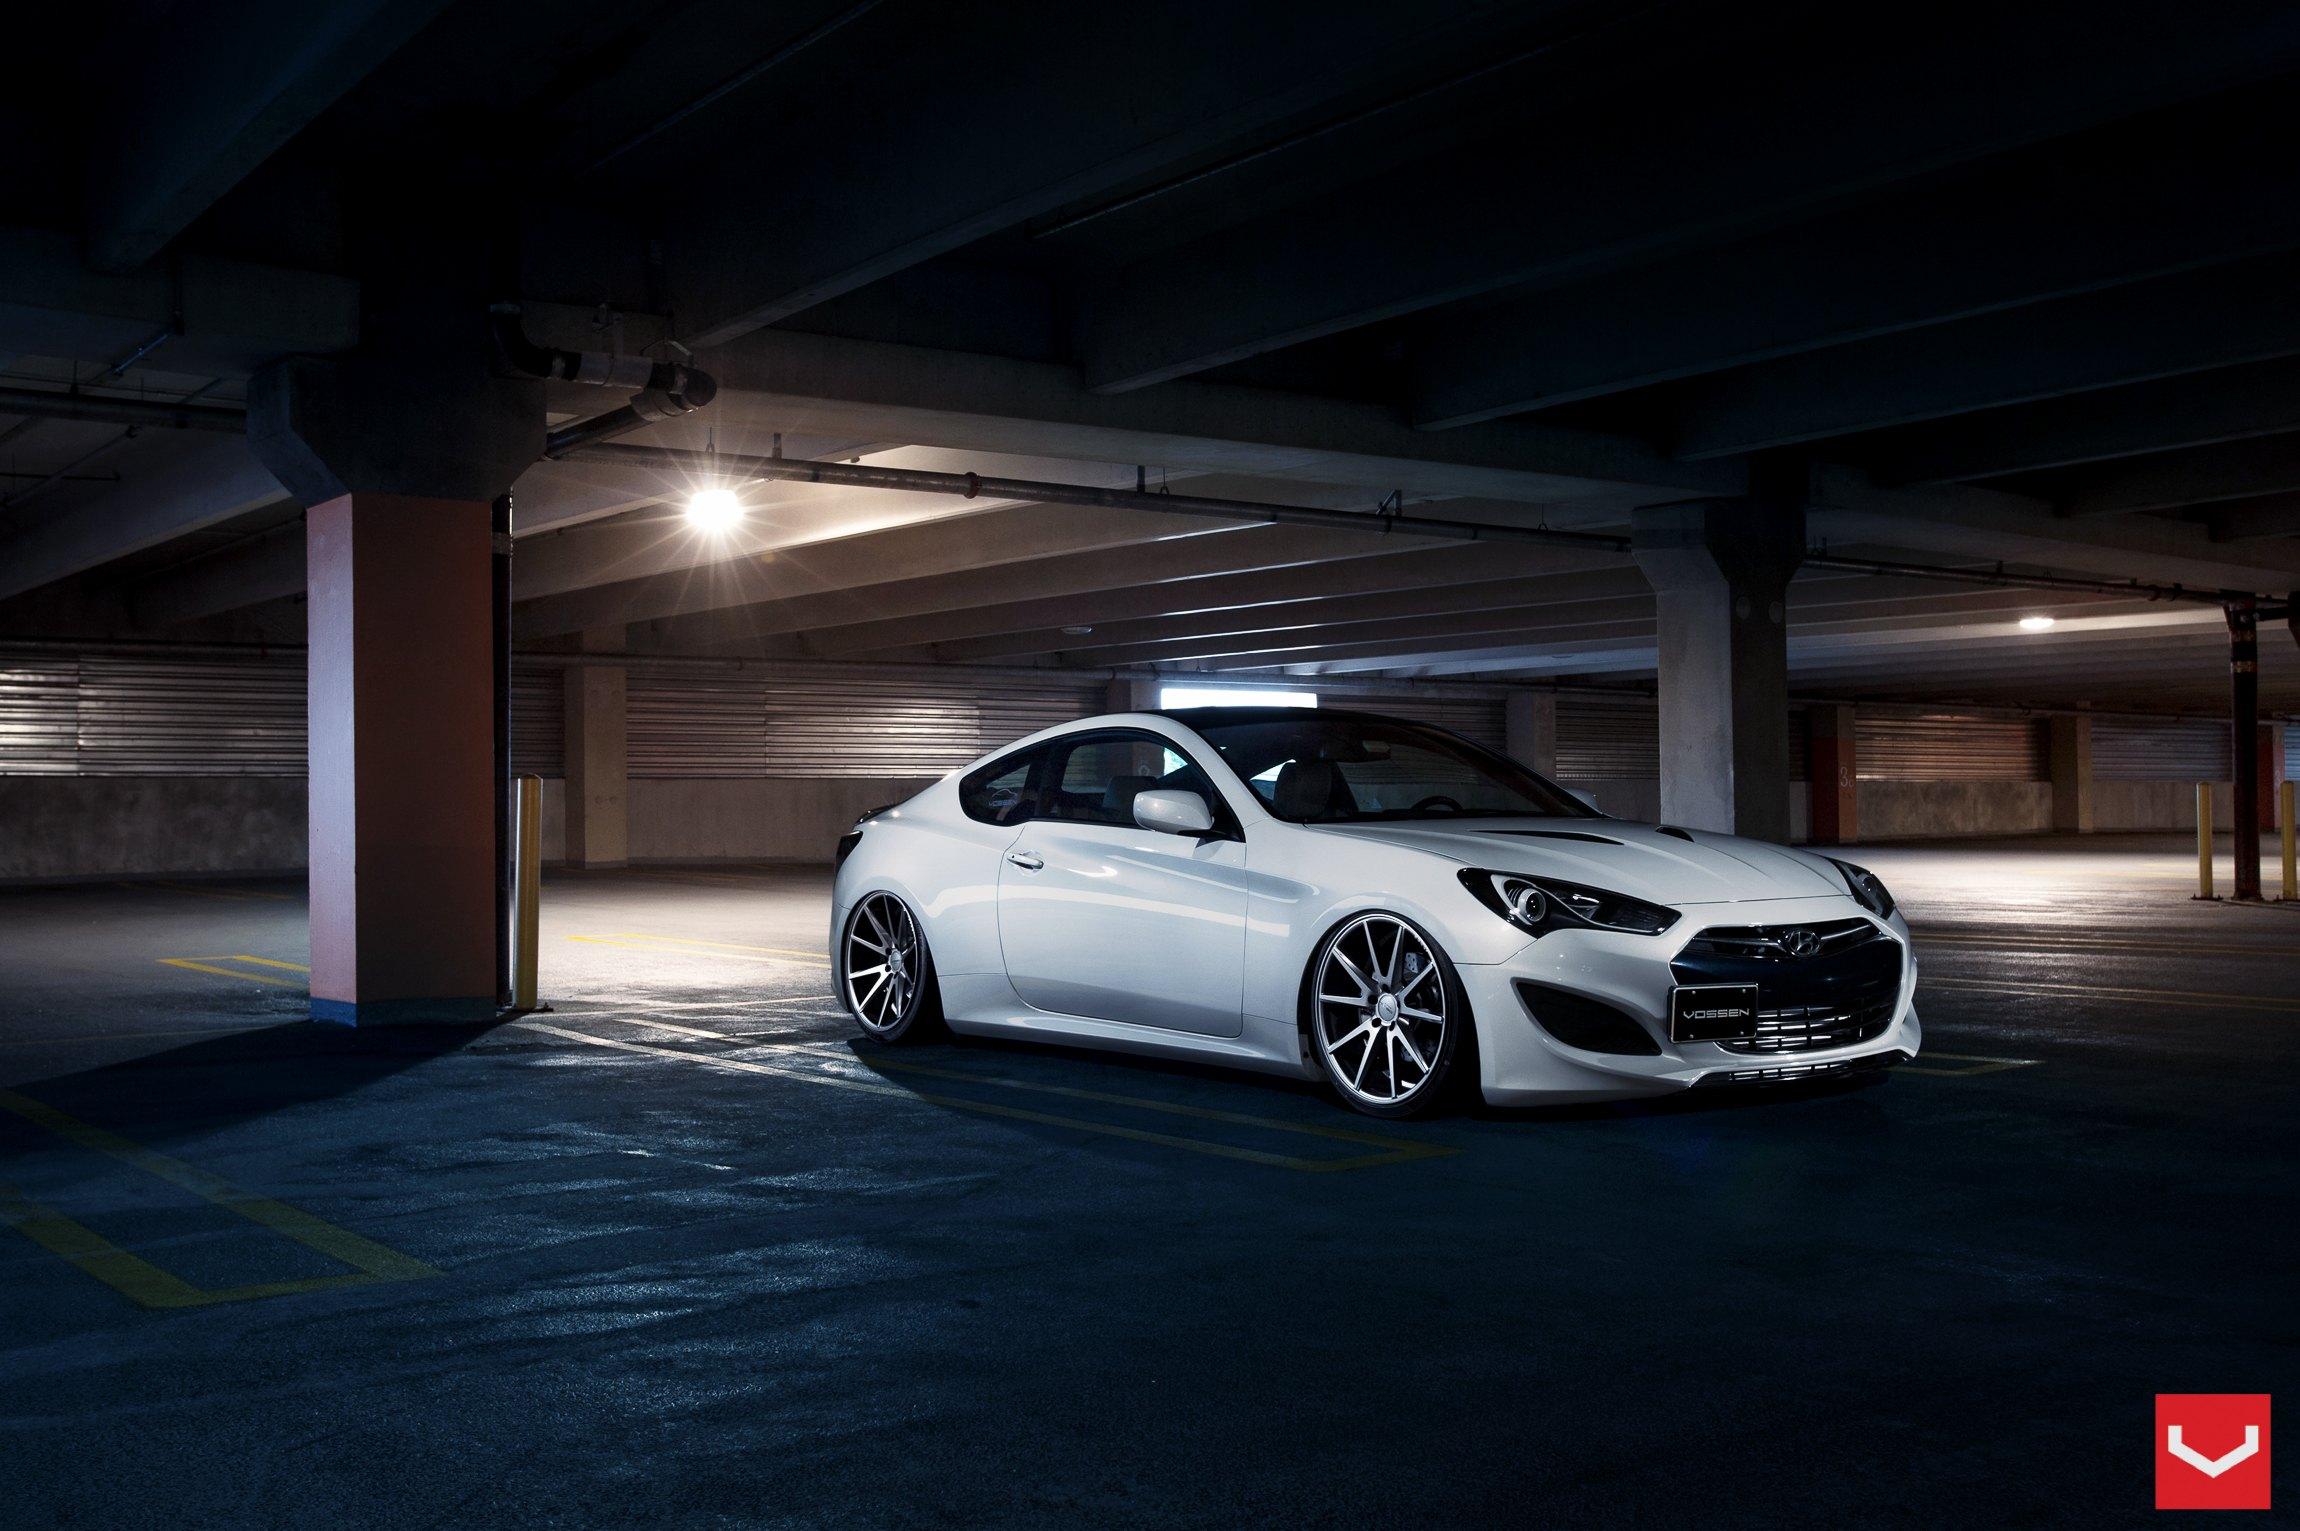 custom 2016 hyundai genesis coupe images mods photos upgrades gallery. Black Bedroom Furniture Sets. Home Design Ideas